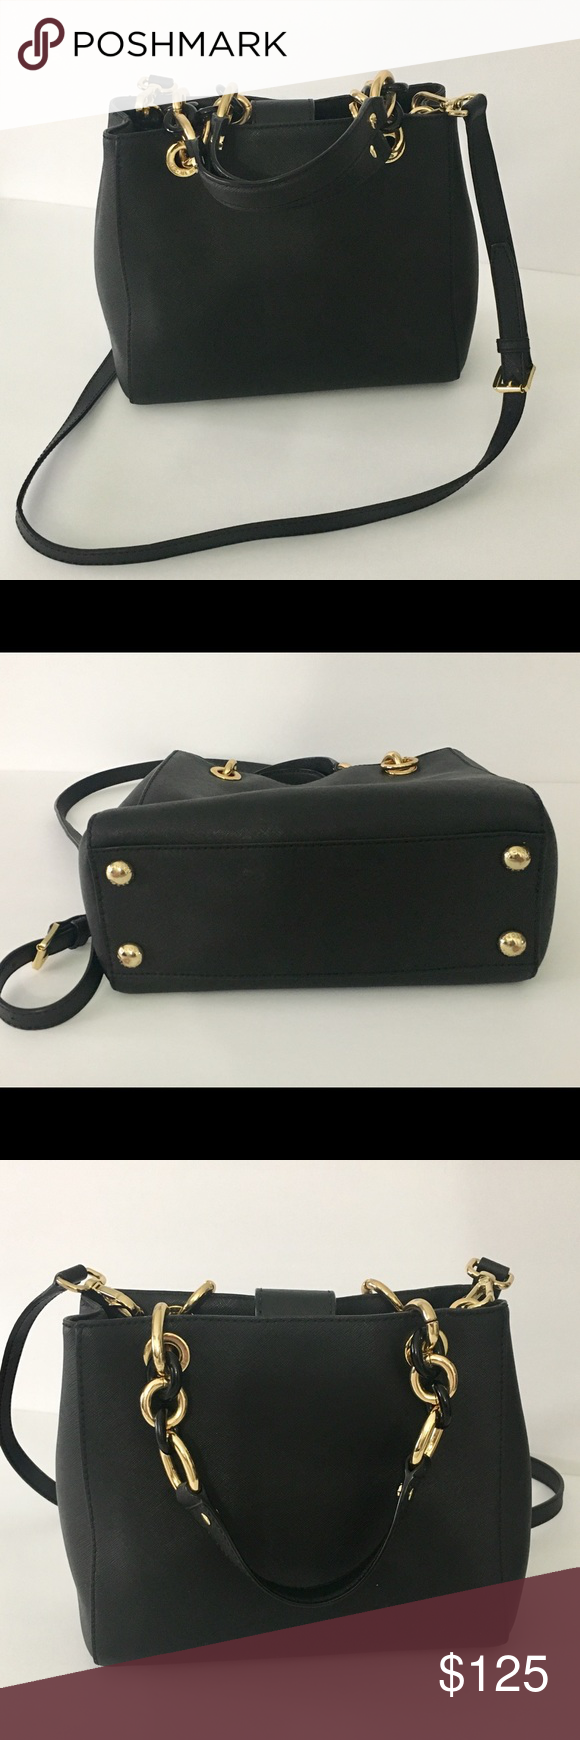 cfea8b41b275 Authentic Michael Kors Black Authentic Pre-owned MK Satchel Handbag black  leather, in excellent conditions, gently care model 1974222 10